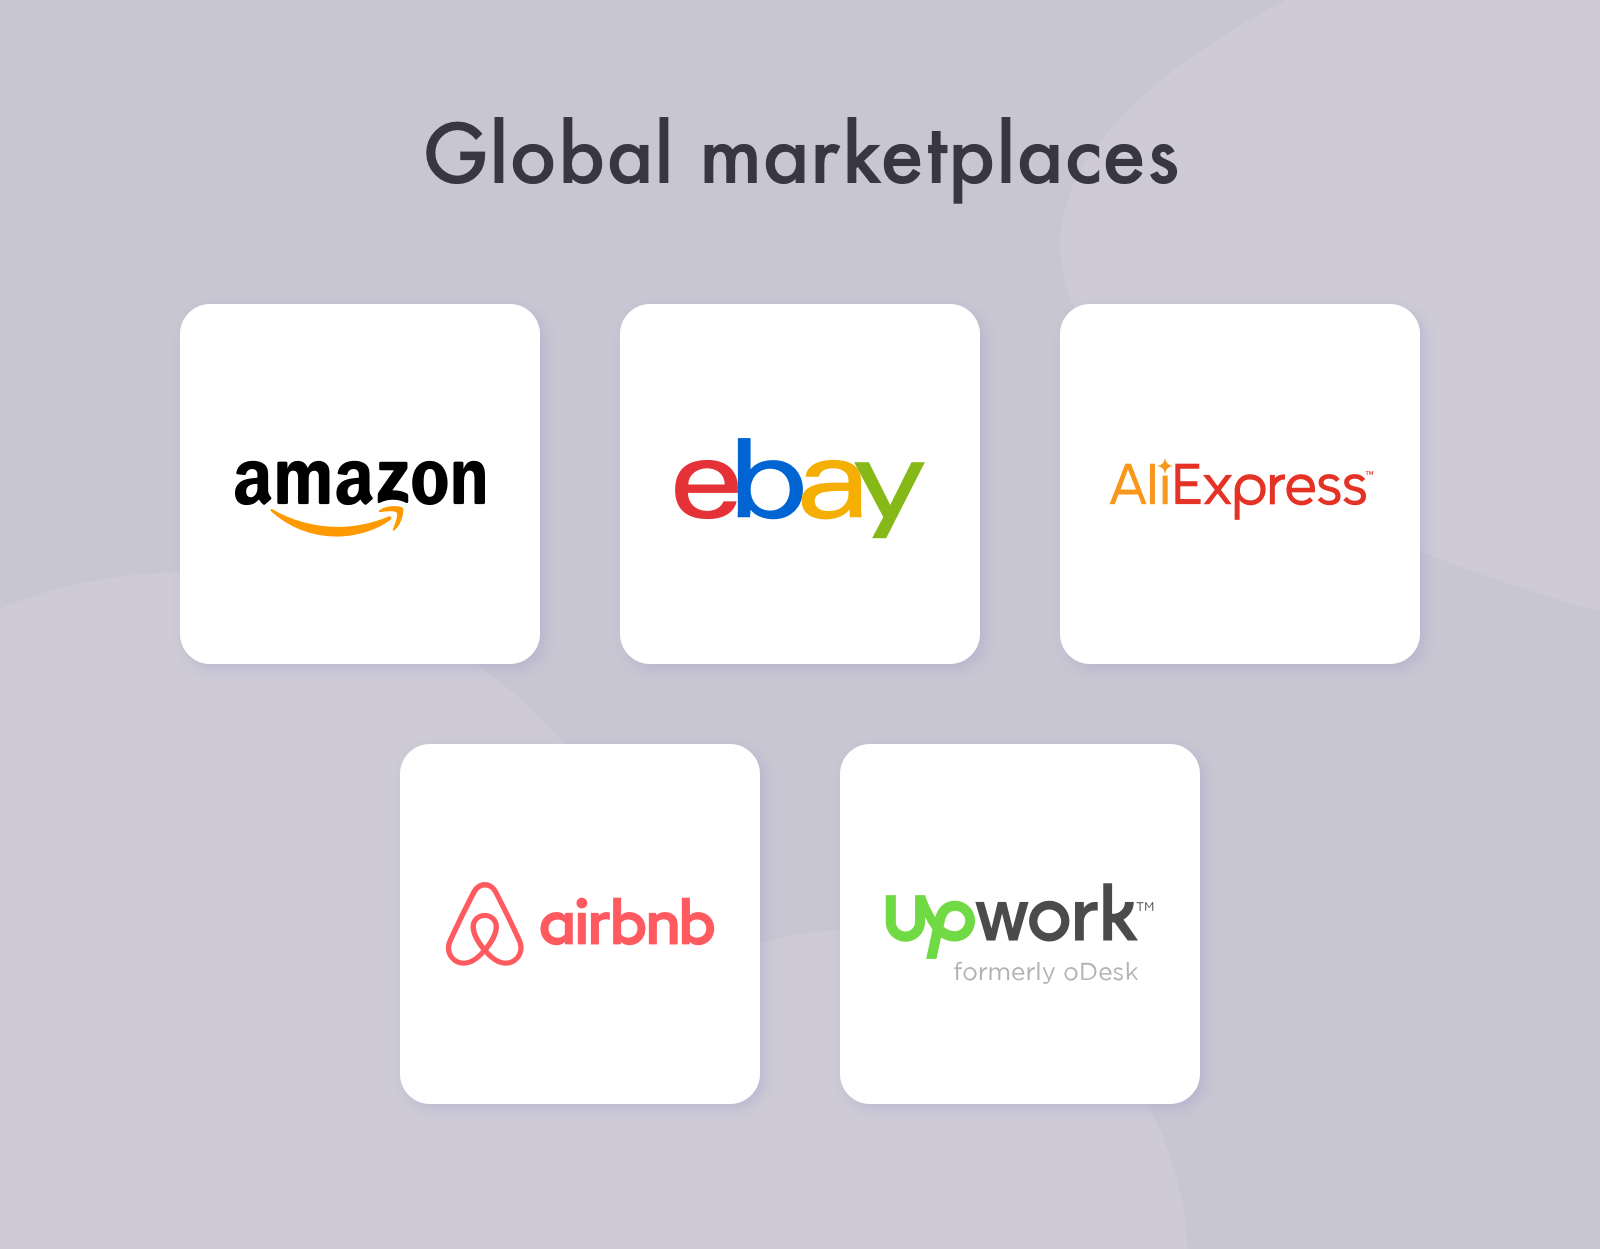 global marketplaces